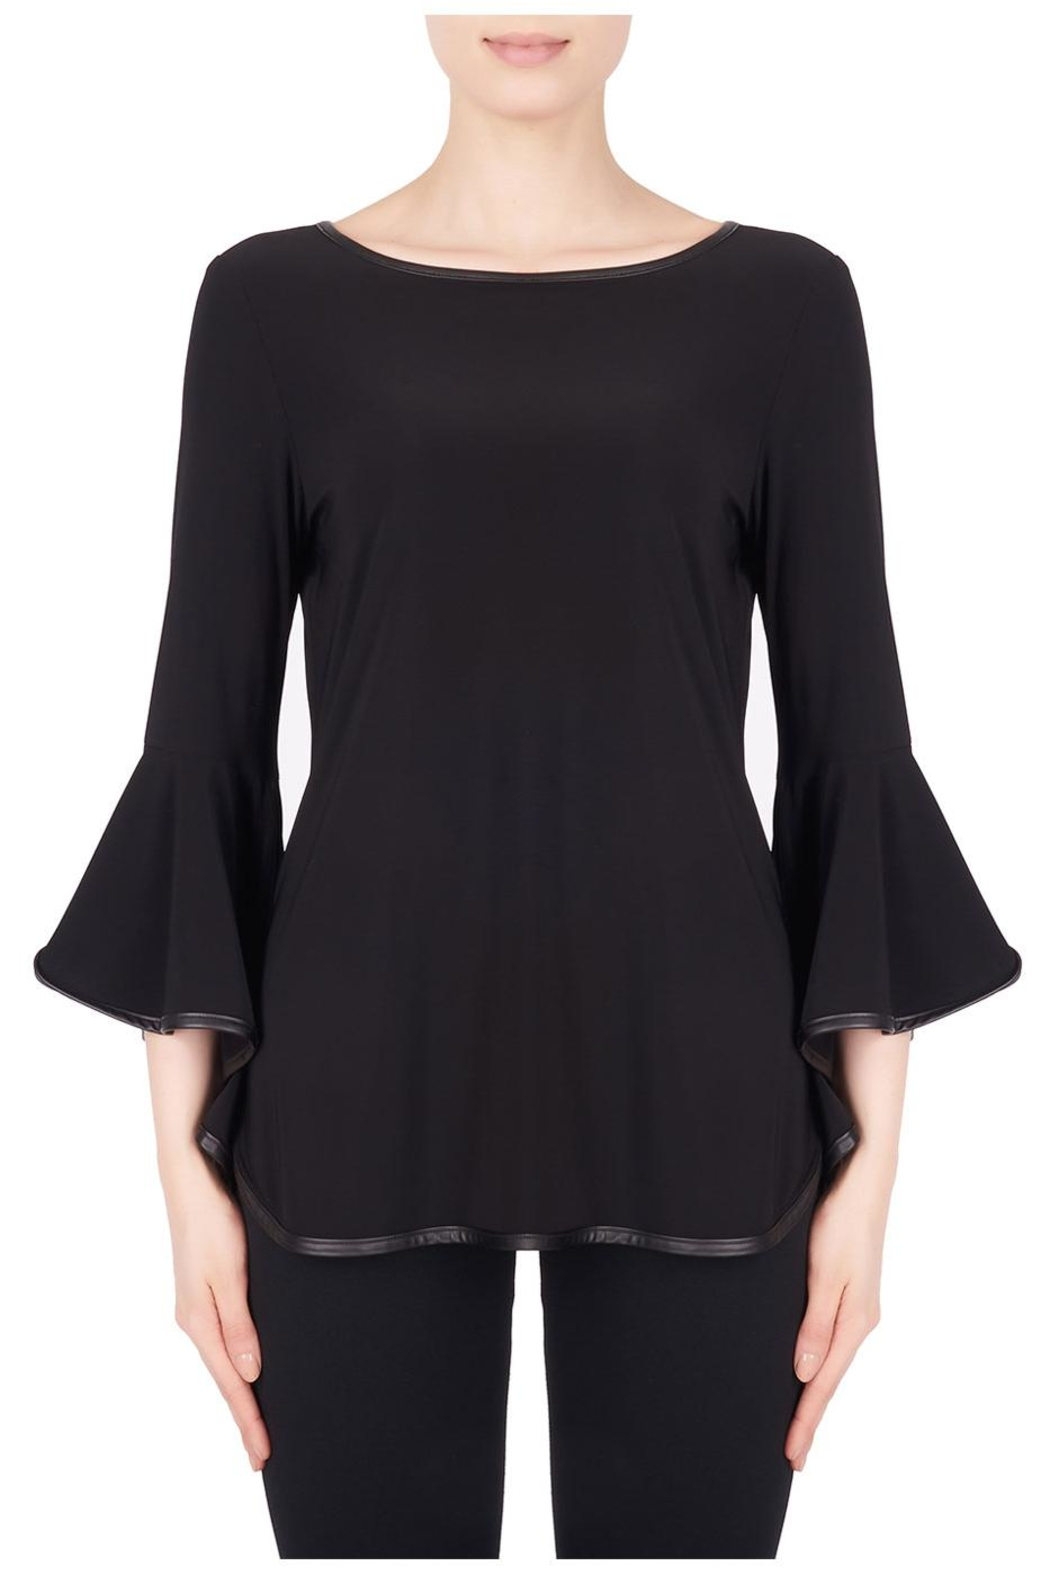 Joseph Ribkoff Poet Sleeves Top - Front Full Image